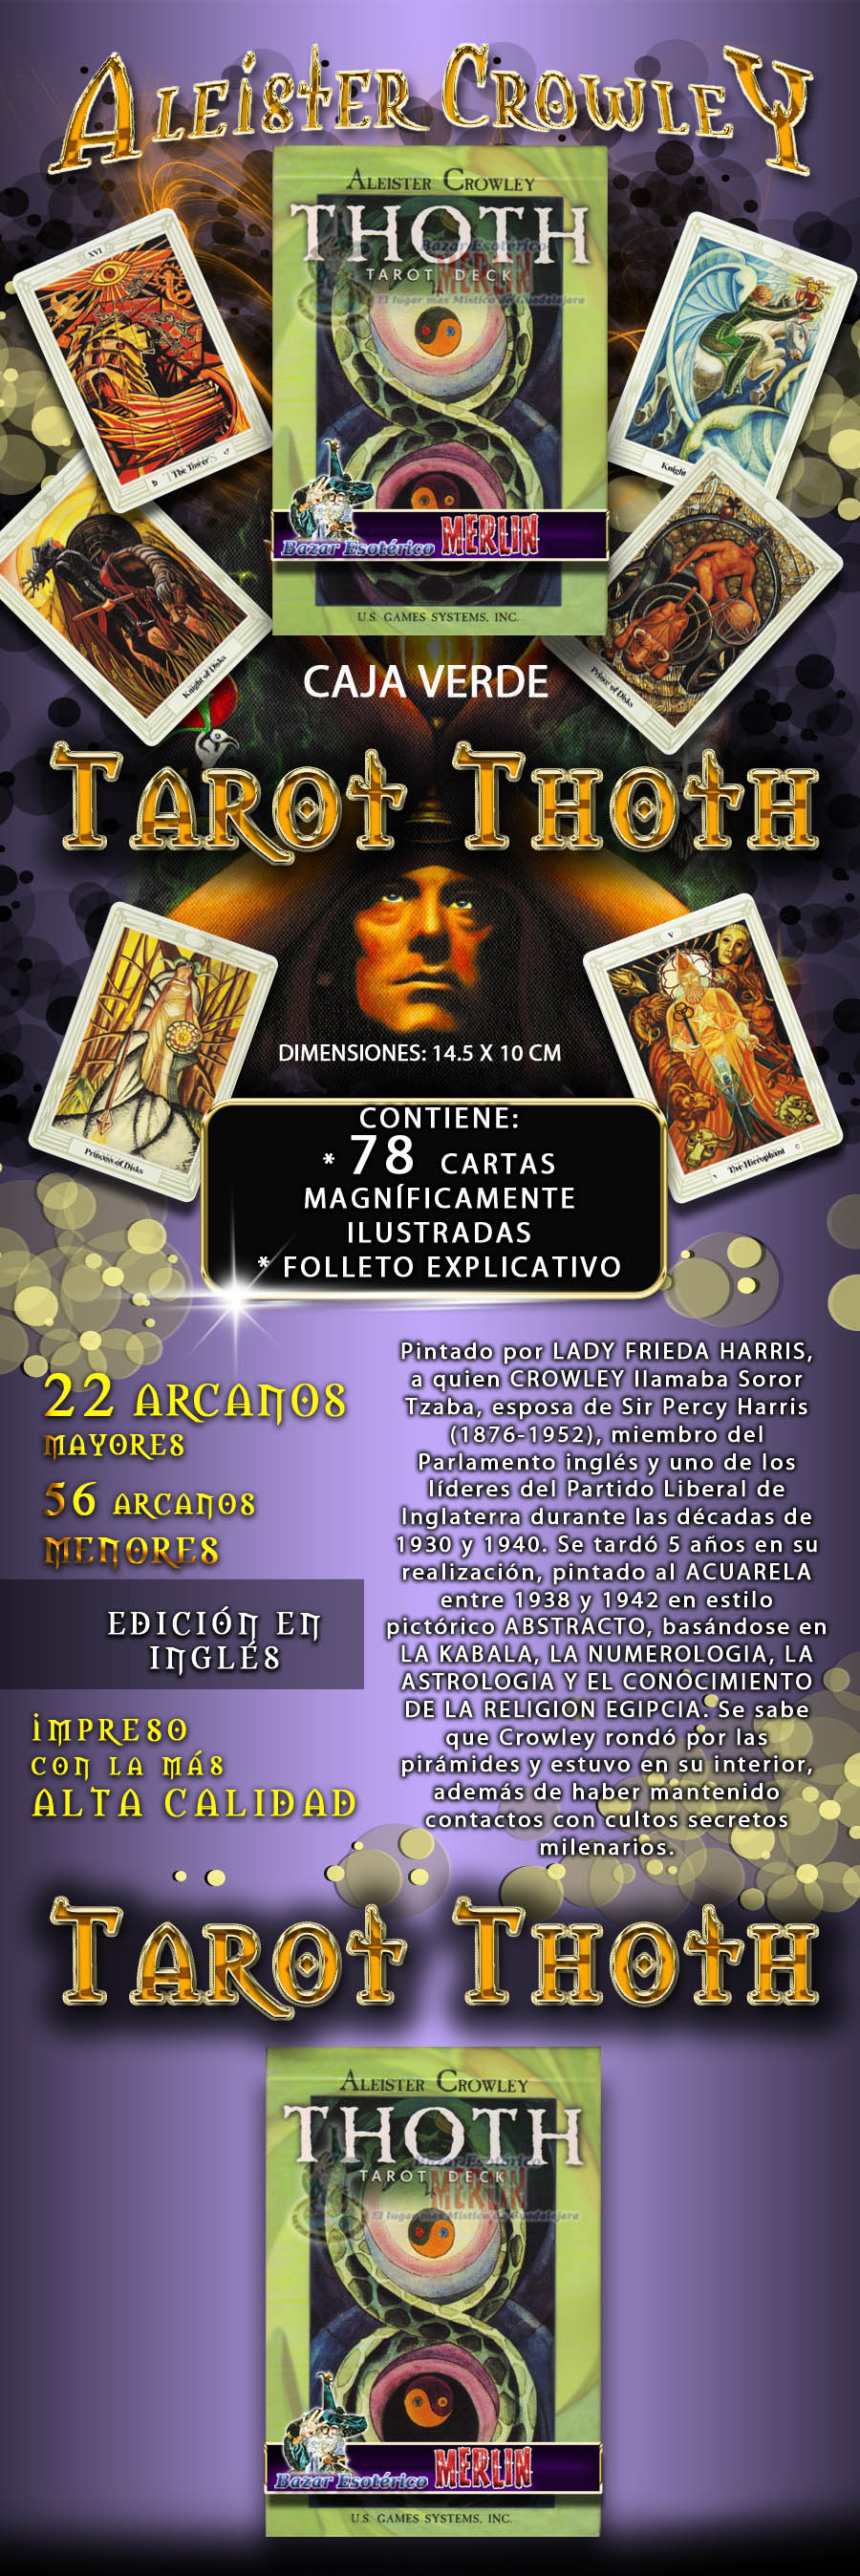 tarot_thoth_crowley_verde_diseno